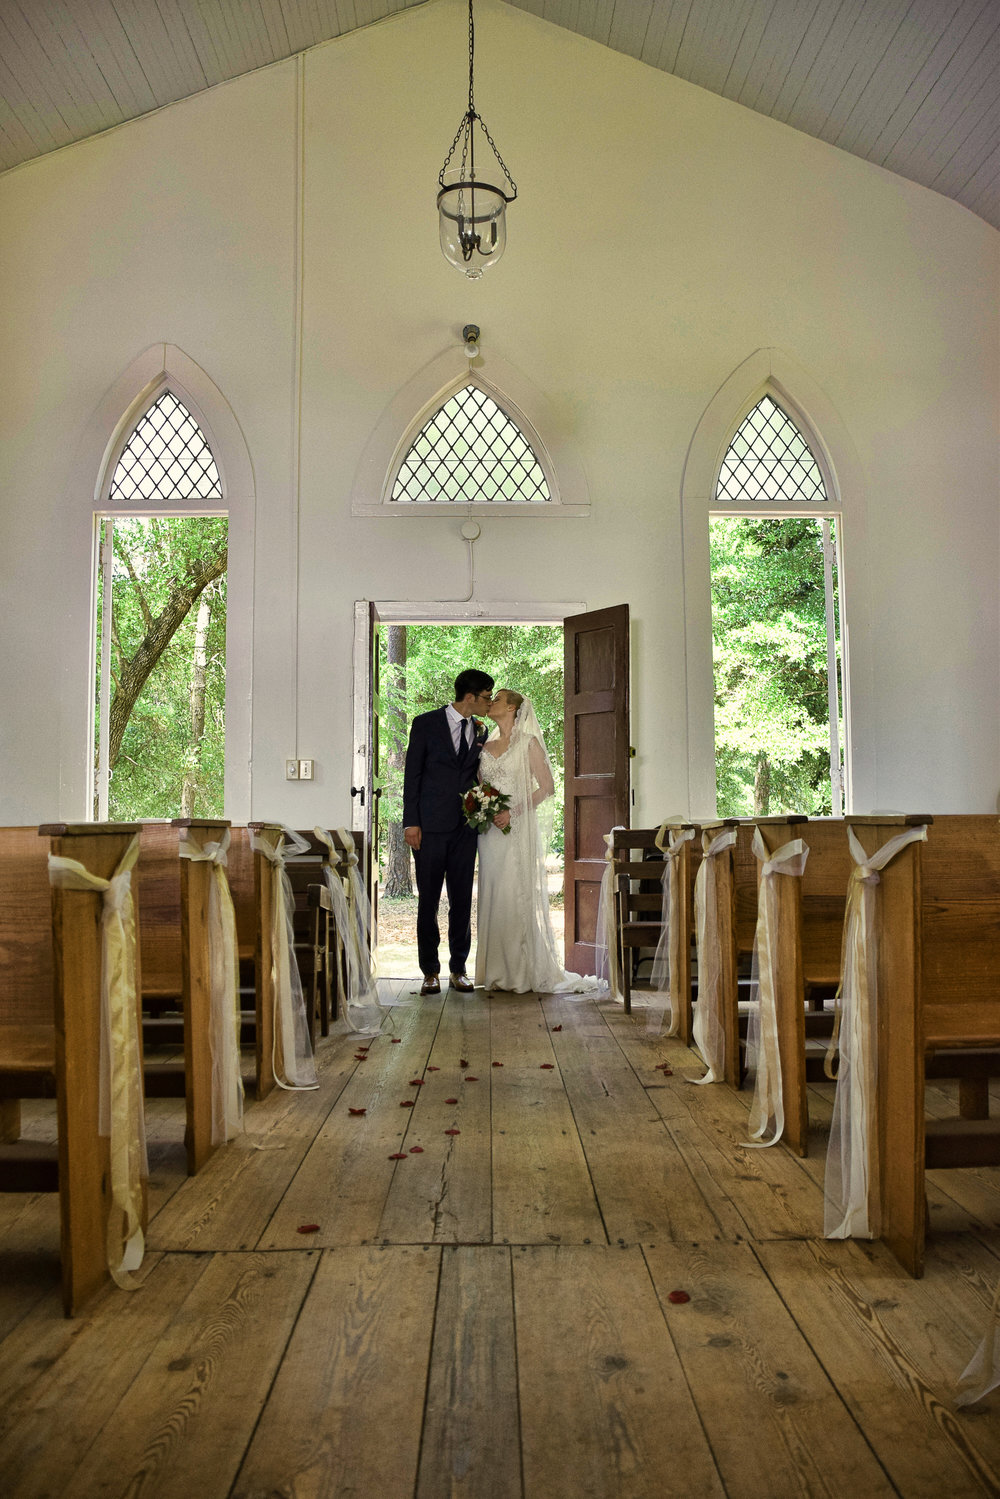 - Bride and groom sharing a kiss,at the doorway of the Lebanon Chapel in Airlie Gardens, Wilmington, NC. Billy Beach Photography.